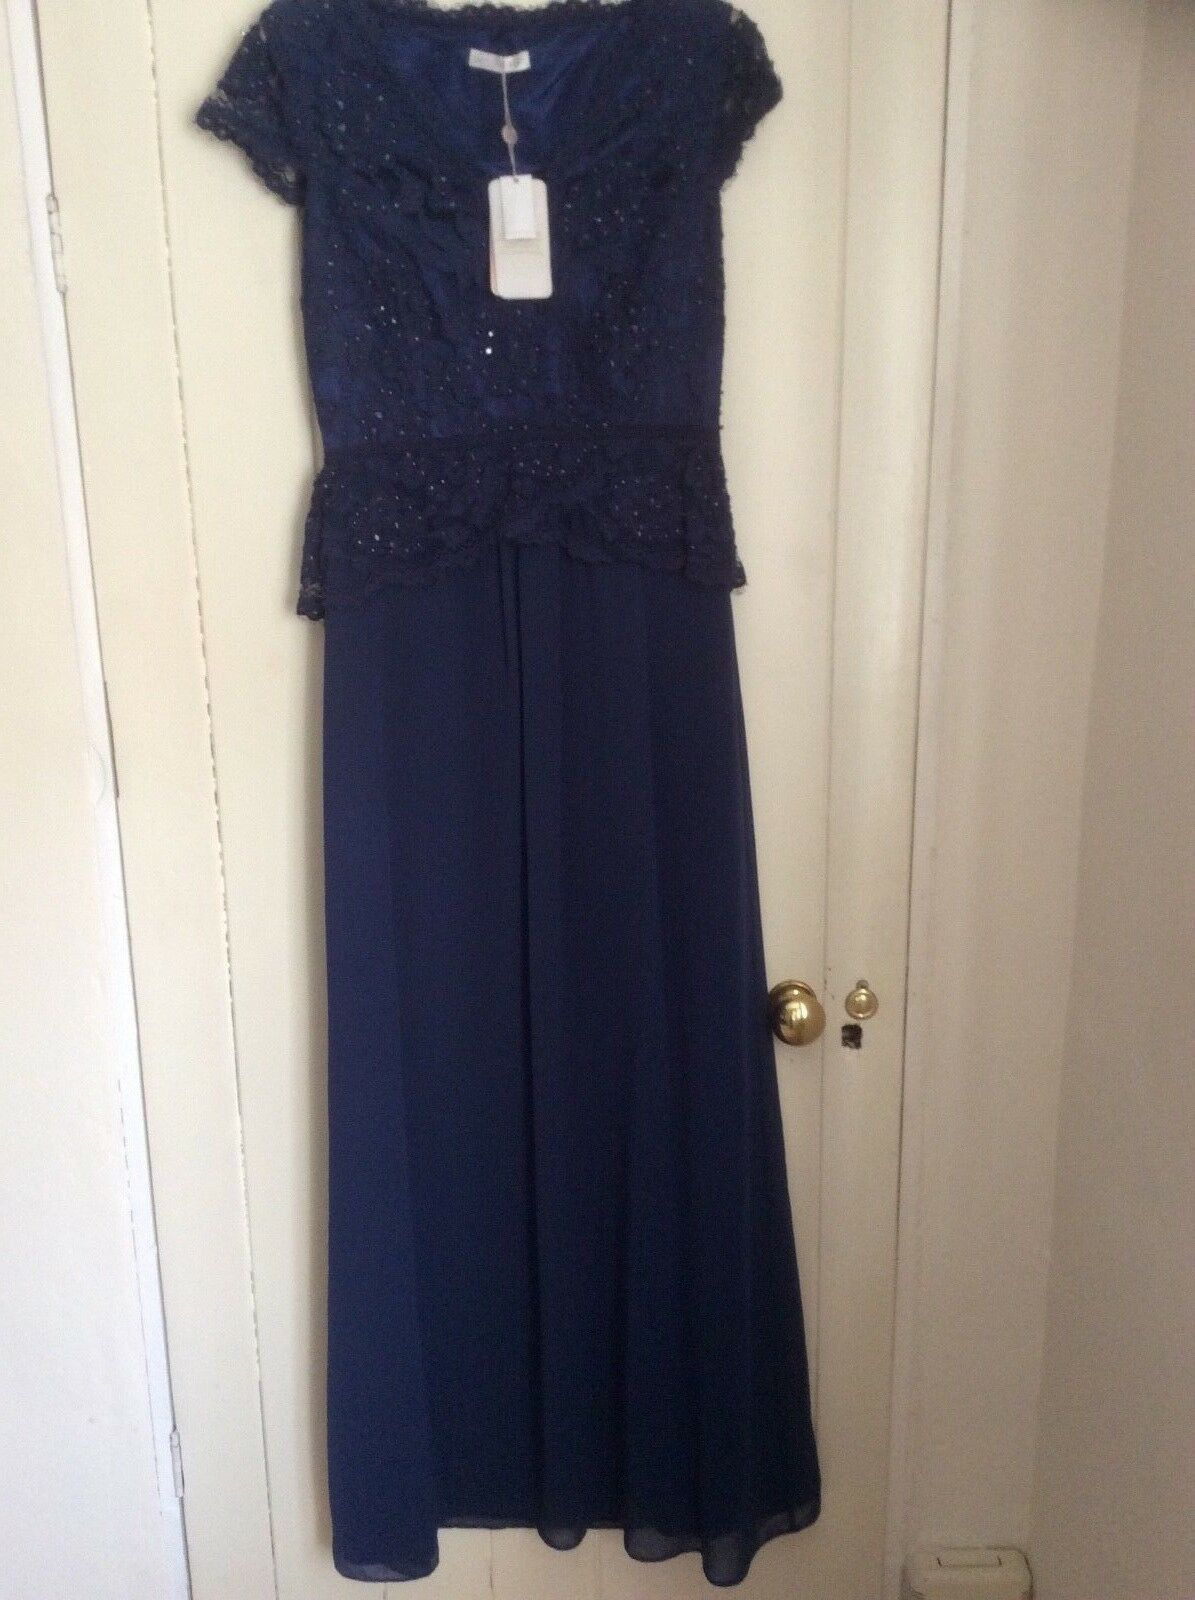 3e51ae80676e1d Jacques green Navy Beaded Bodice Evening Dress Size 8 Party Formal Evening  bluee nospoh21141-Dresses